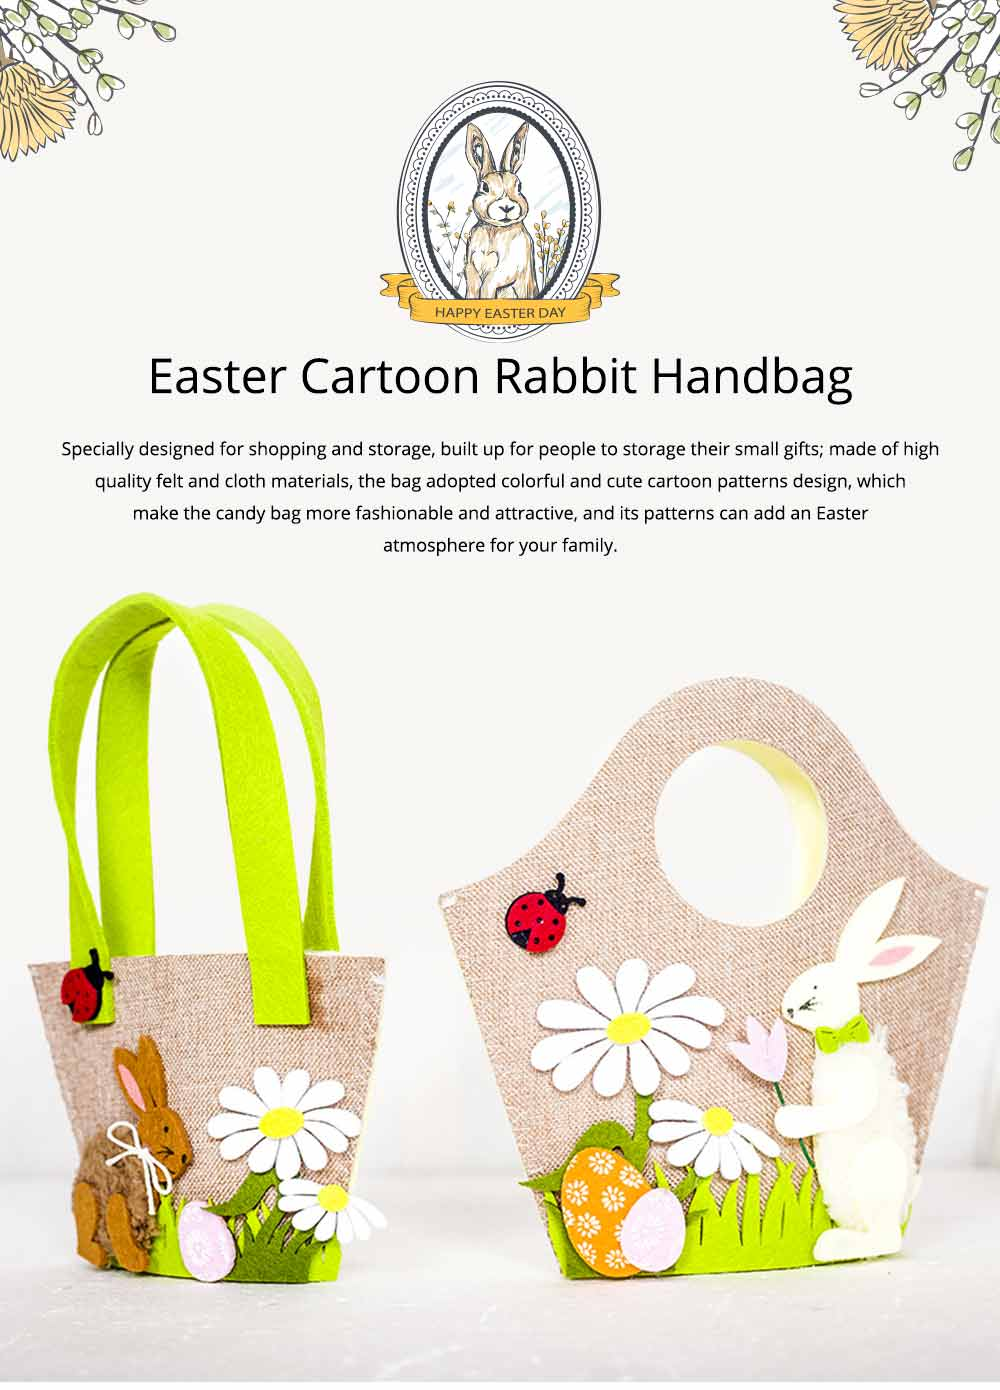 Easter Egg Bag Cartoon Rabbit Handbag Storage Bag, Single Shoulder Shopping Basket Bunny Printed Storage Bag 0